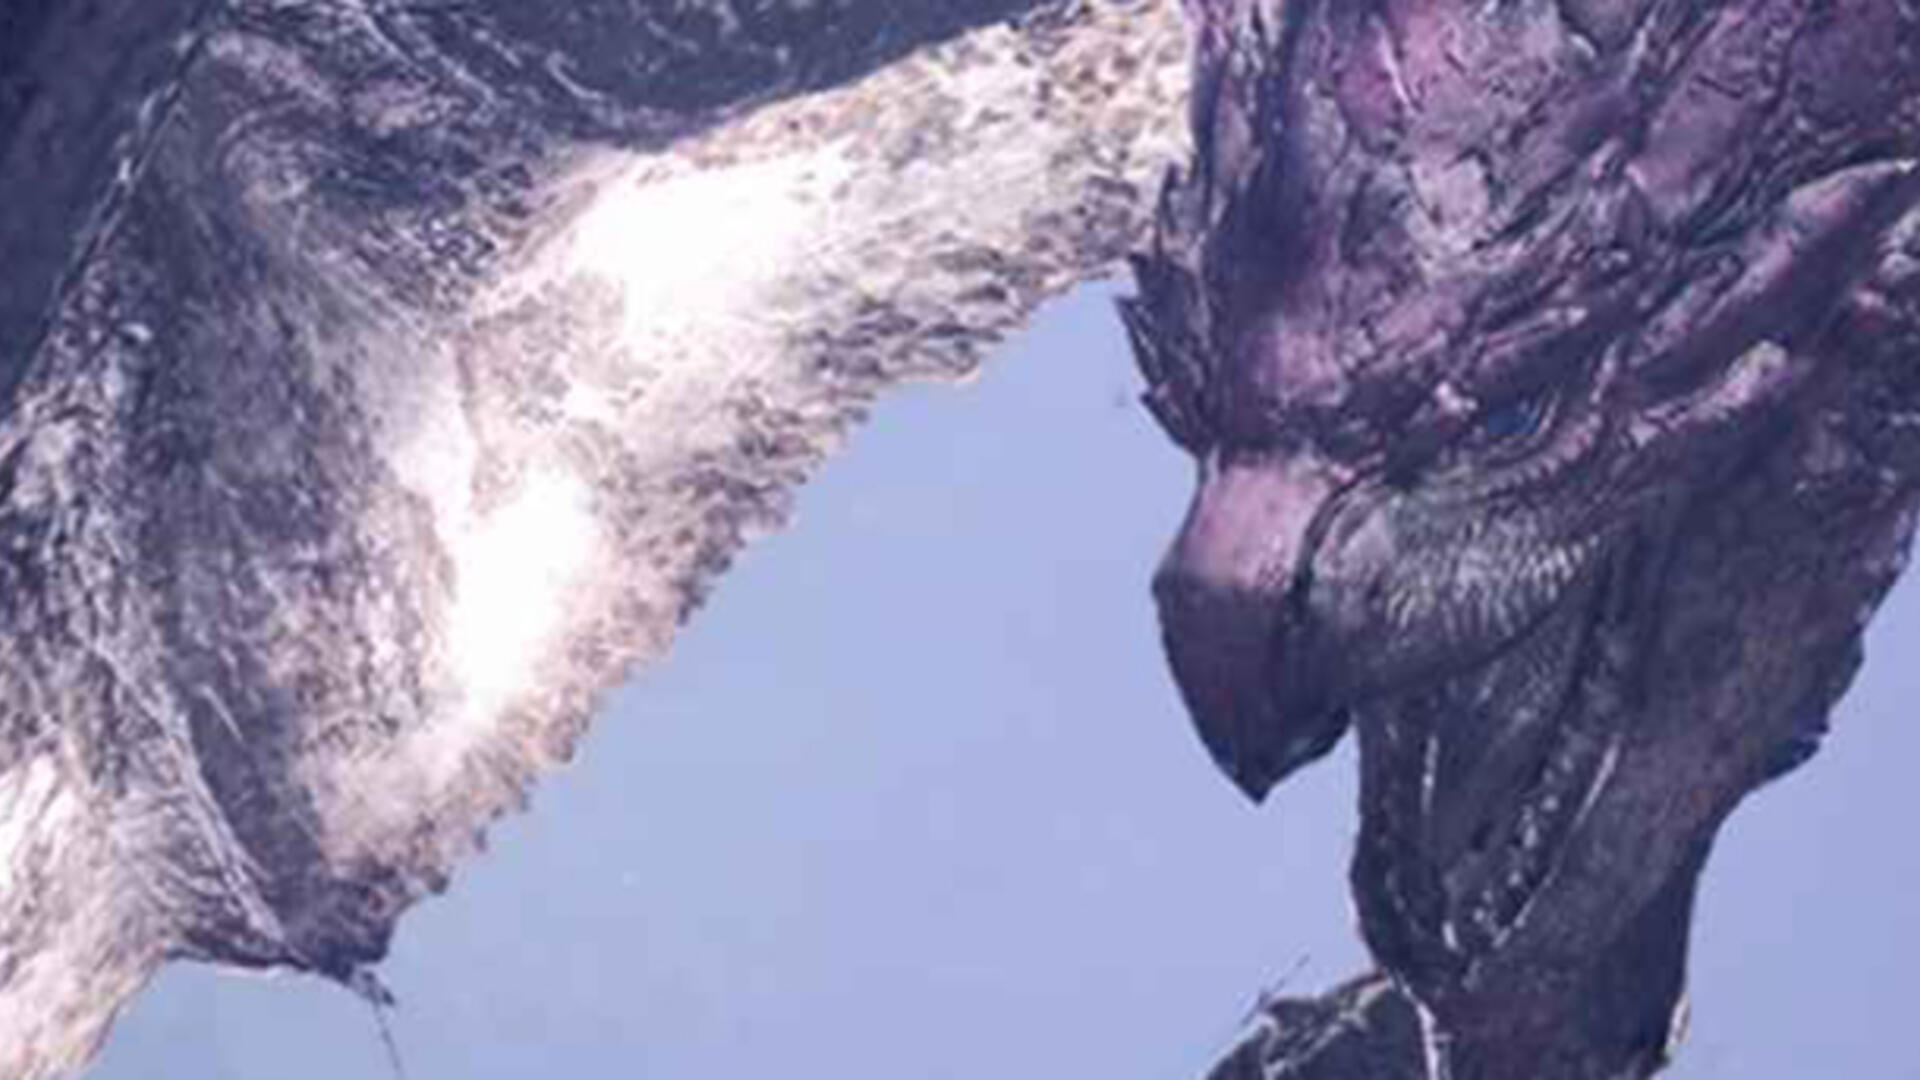 Monster Hunter: World's Pink Rathian Was My White Whale